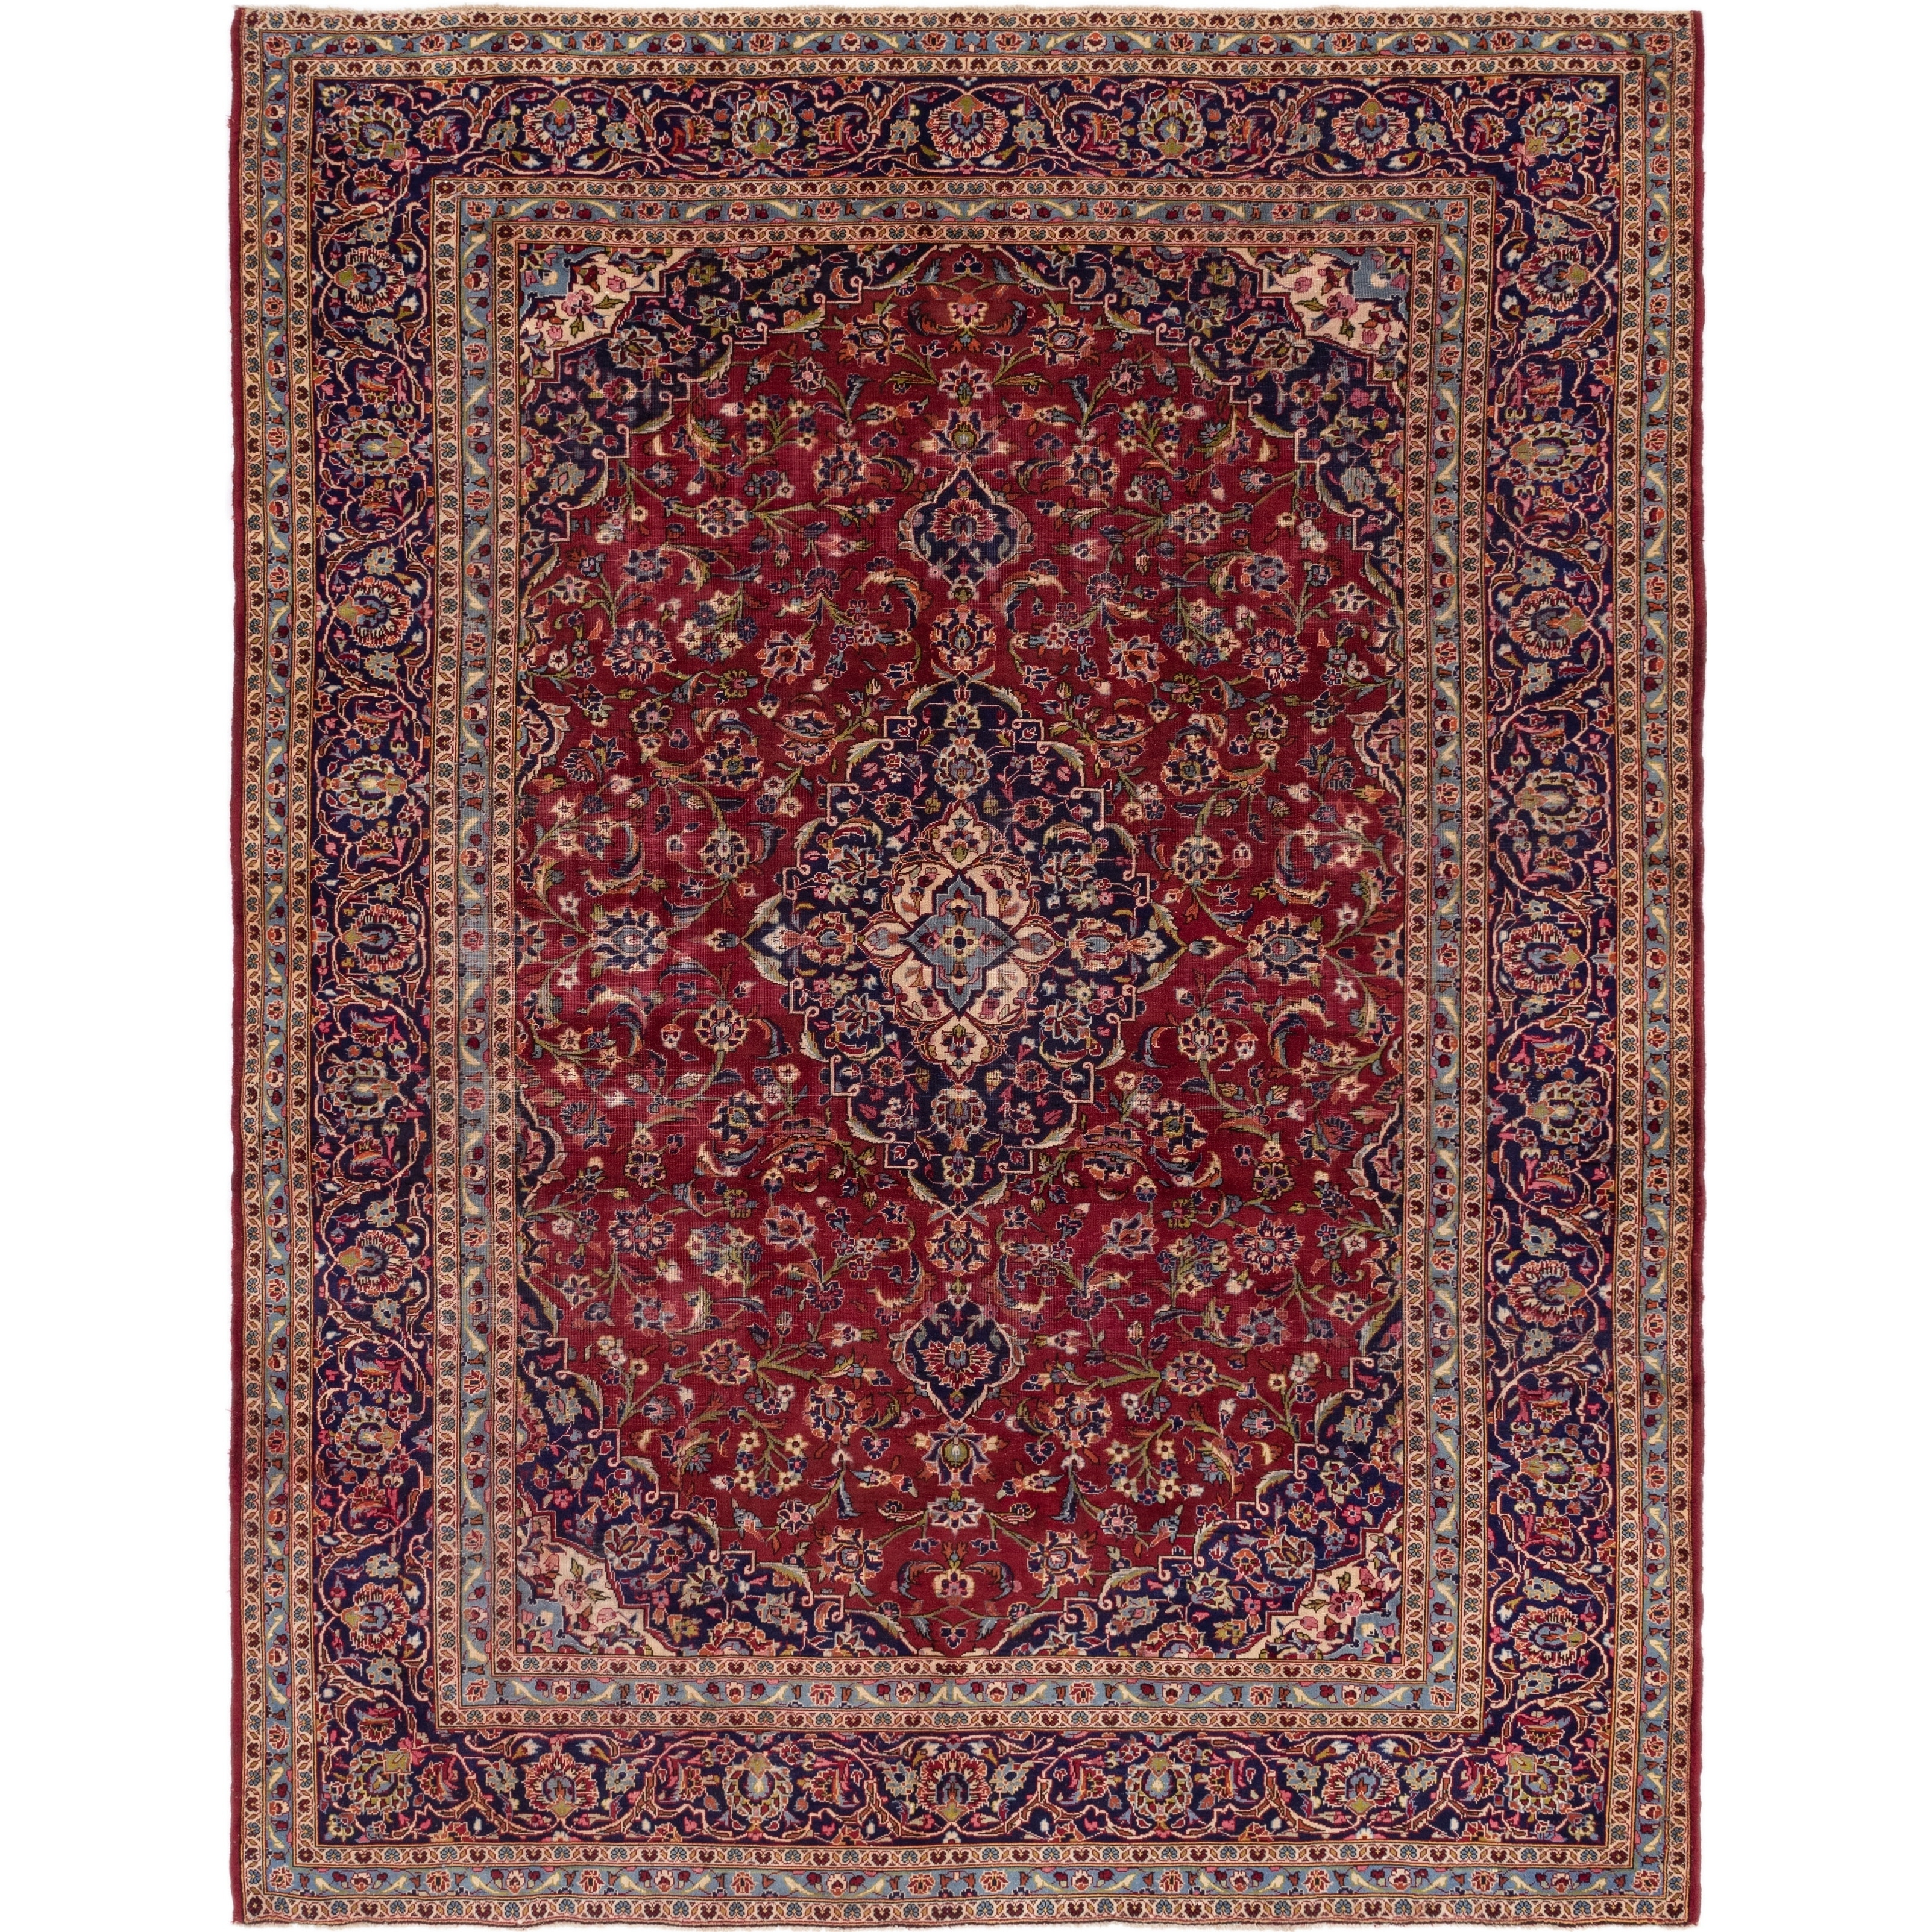 Hand Knotted Kashan Semi Antique Wool Area Rug - 9 6 x 12 5 (Red - 9 6 x 12 5)